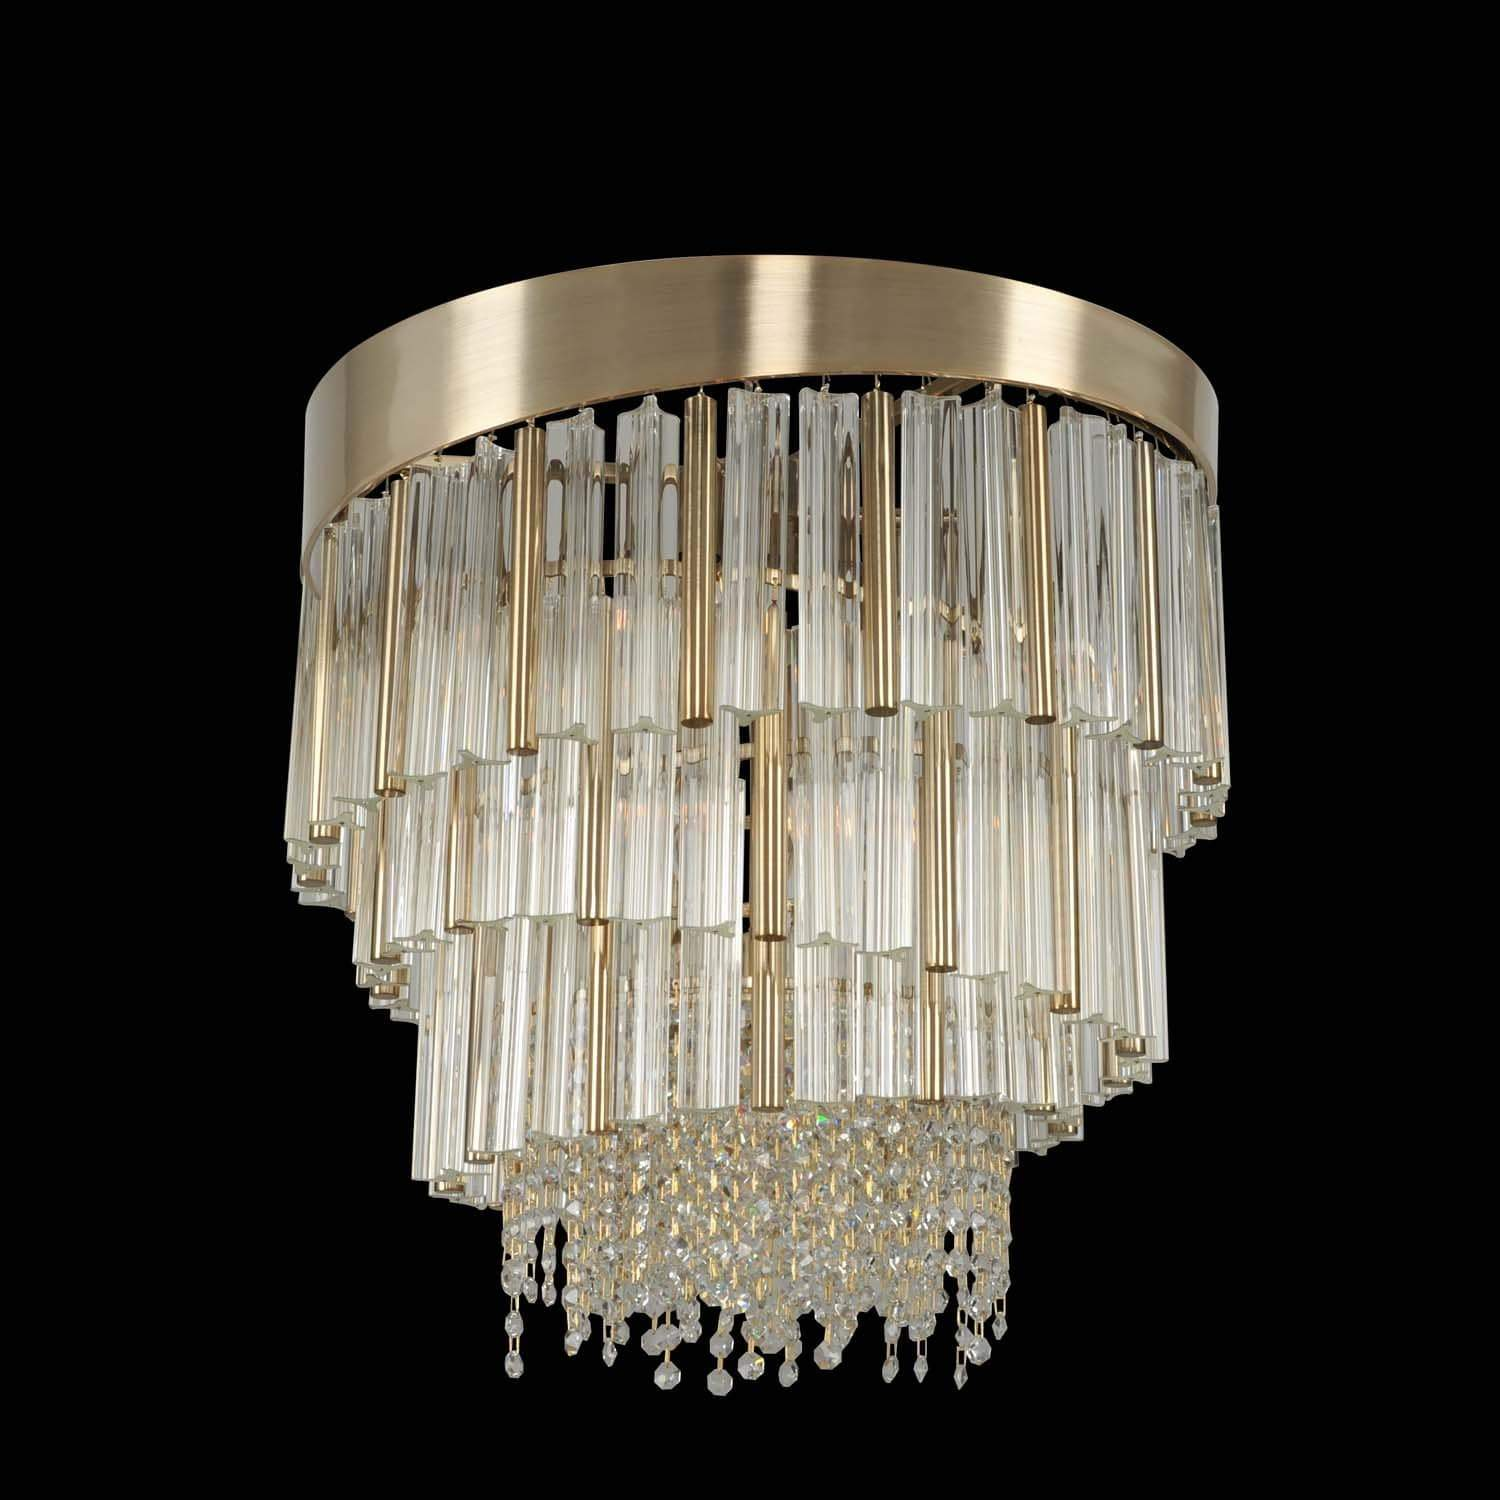 Allegri by Kalco Lighting Pendants Brushed Champagne Gold / Firenze Clear Espirali 20 Inch Convertible Pendant - Semi Flush Mount From Allegri by Kalco Lighting 029850